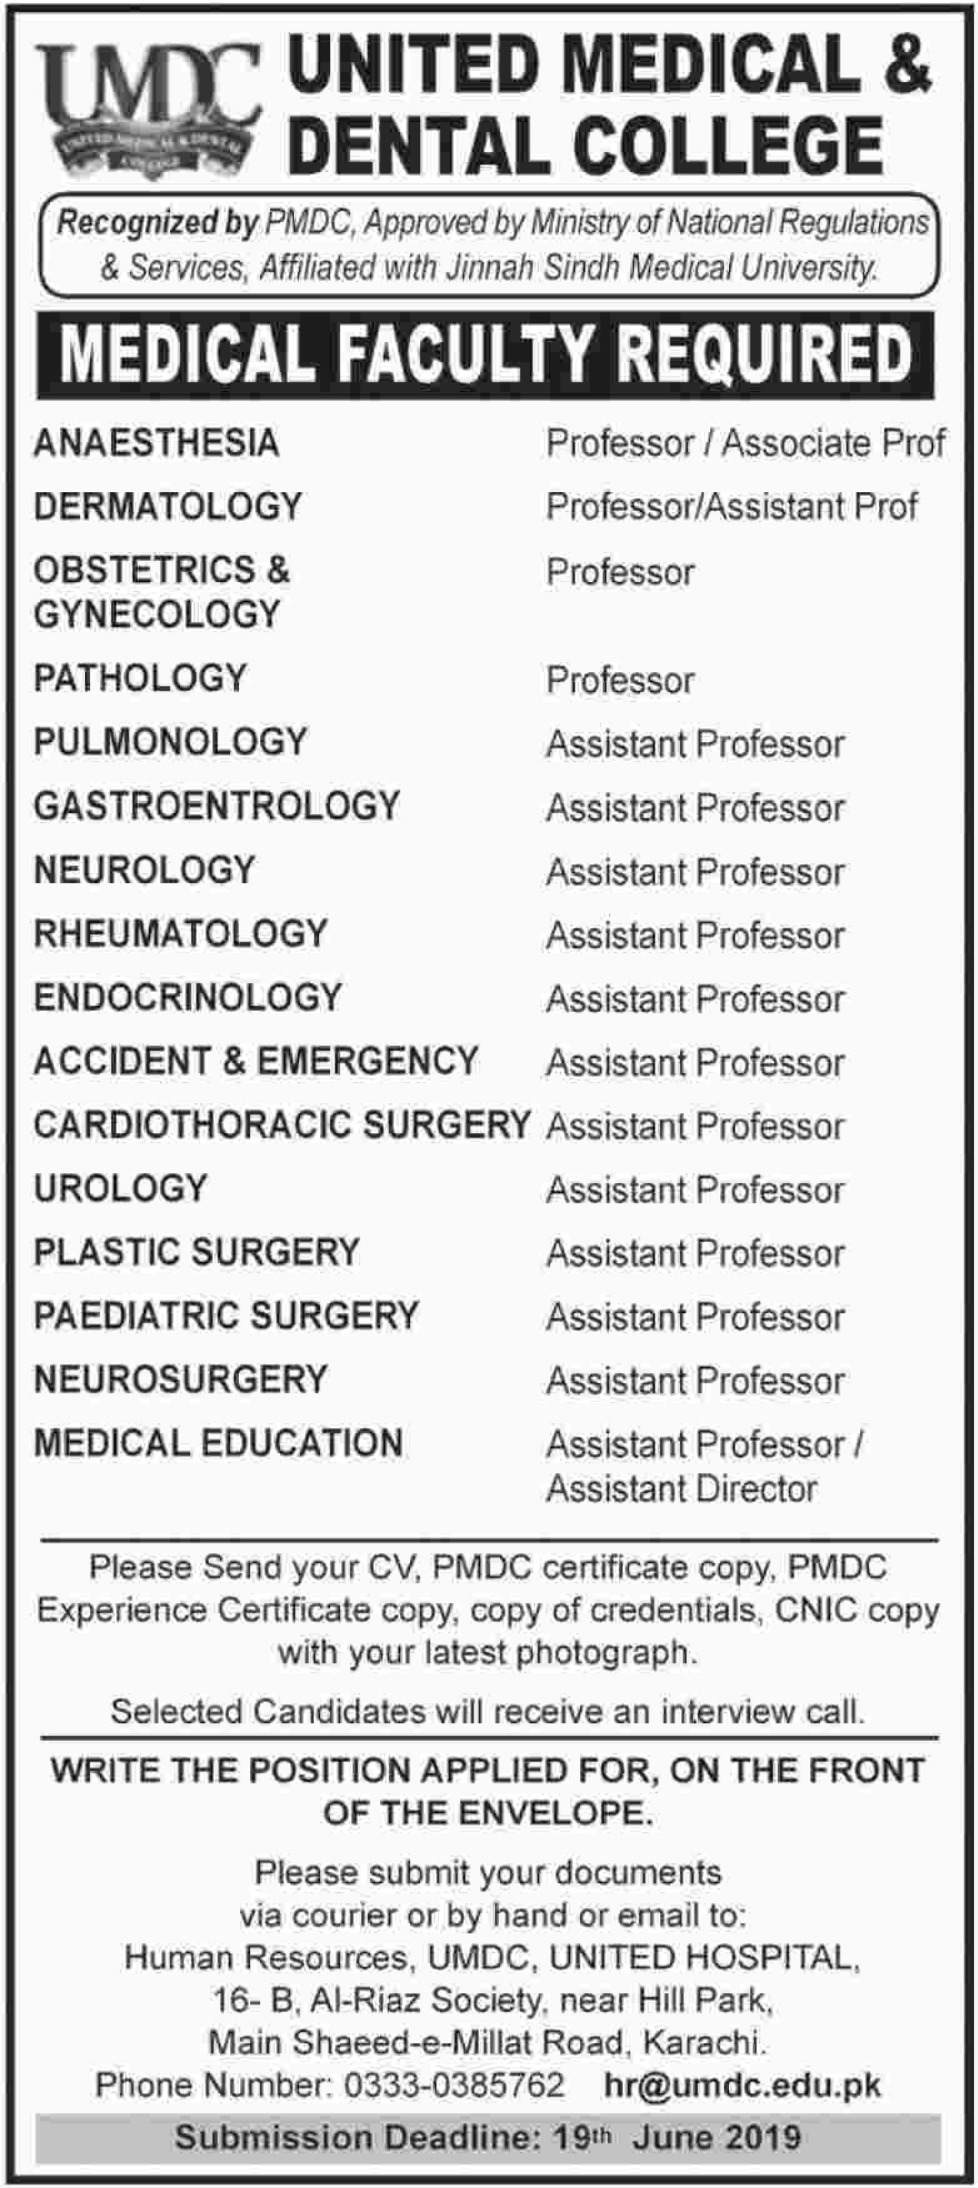 United Medical & Dental College Karachi Jobs 2019